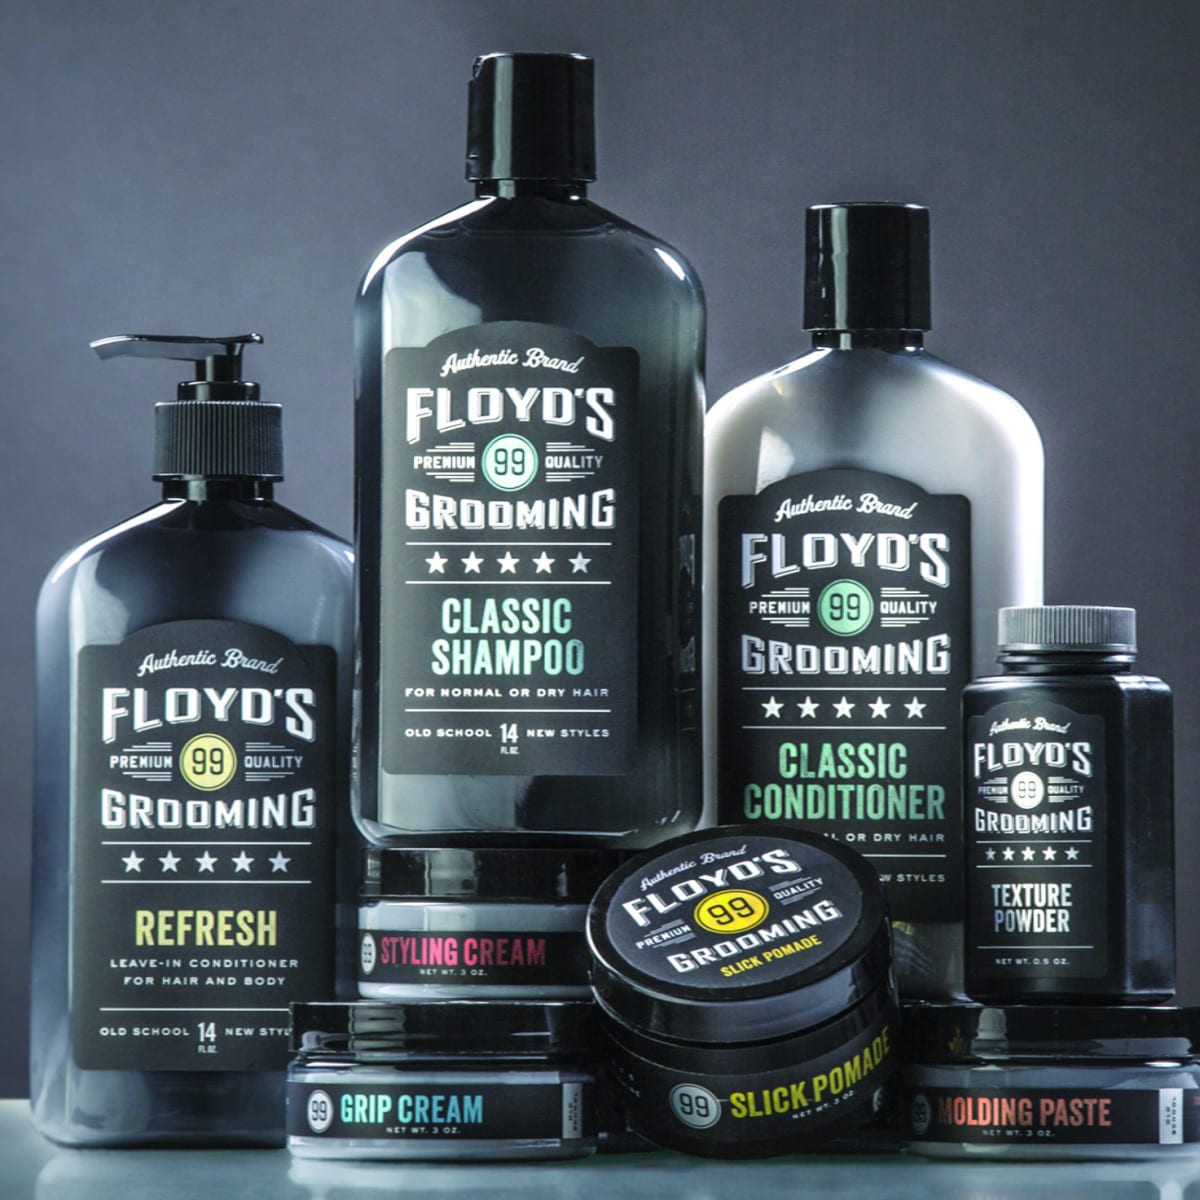 Floyd's 99 Grooming Hair Care Products